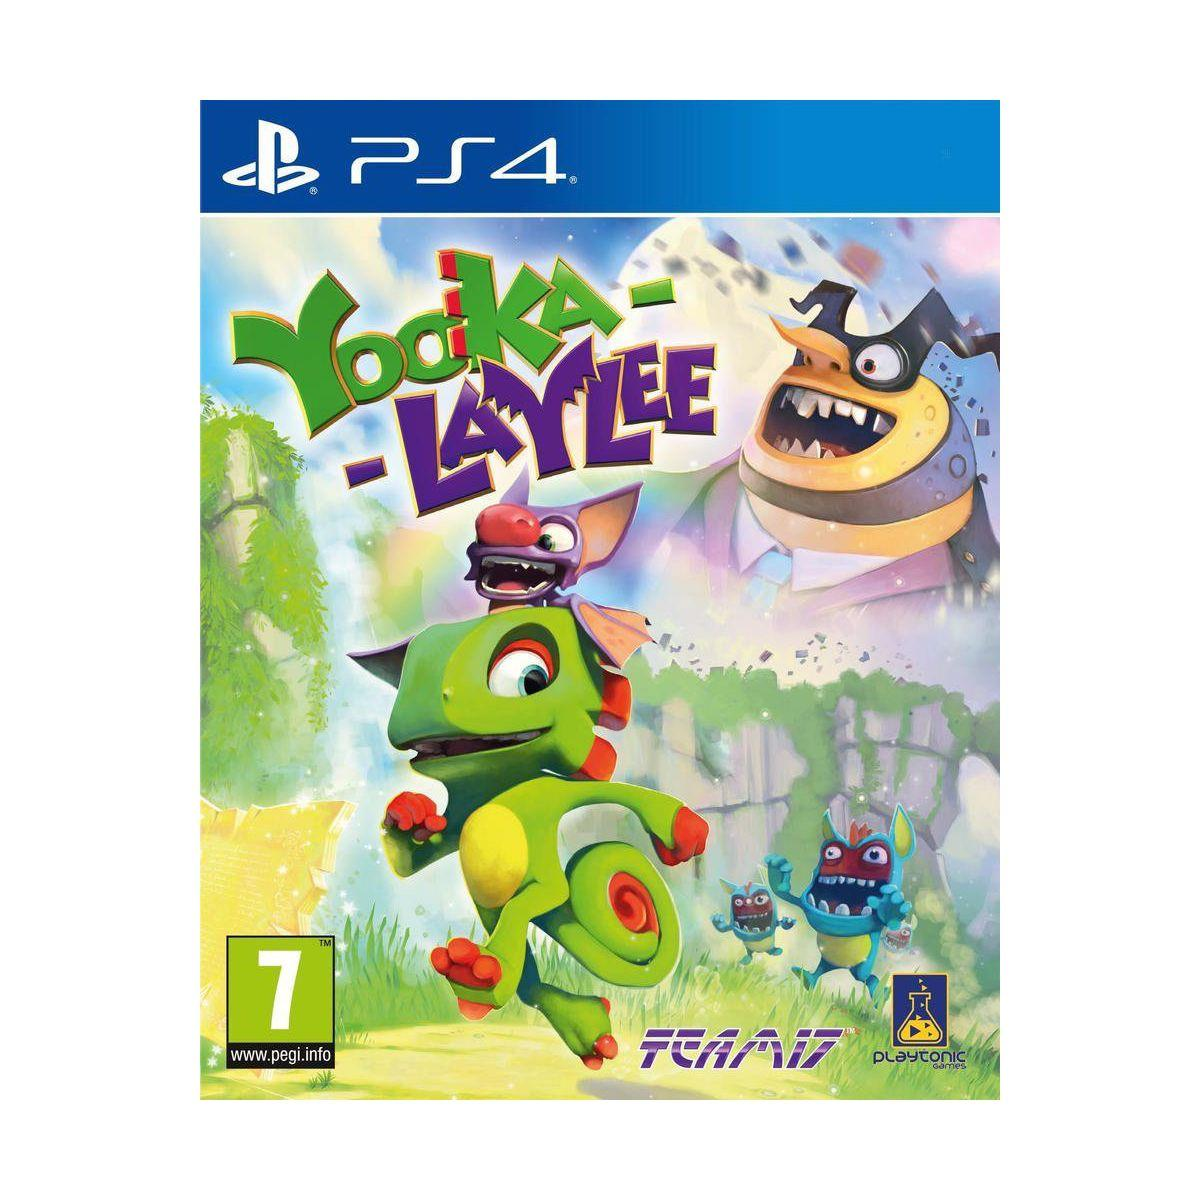 Jeu ps4 just for games yooka-laylee - 2% de remise immédiate avec le code : cool2 (photo)